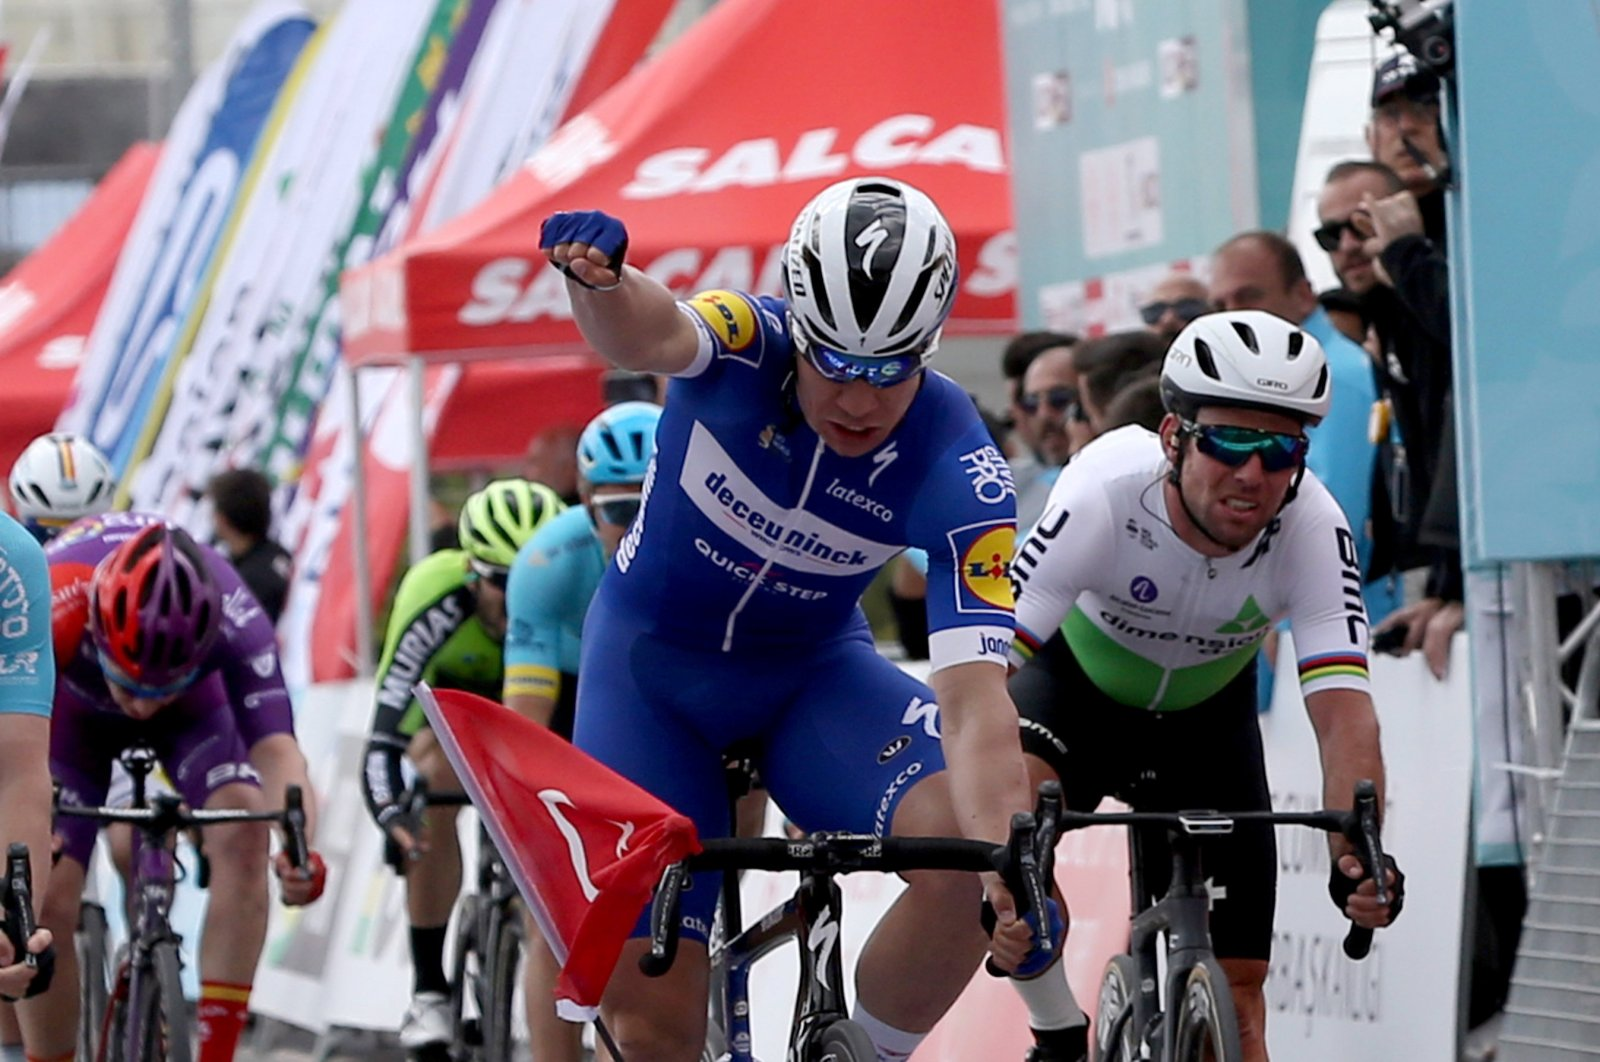 The Netherland's Fabio Jakobsen wins the third stage of the 55th Presidential Cycling Tour of Turkey, Edremit, western Turkey, April 18, 2021.